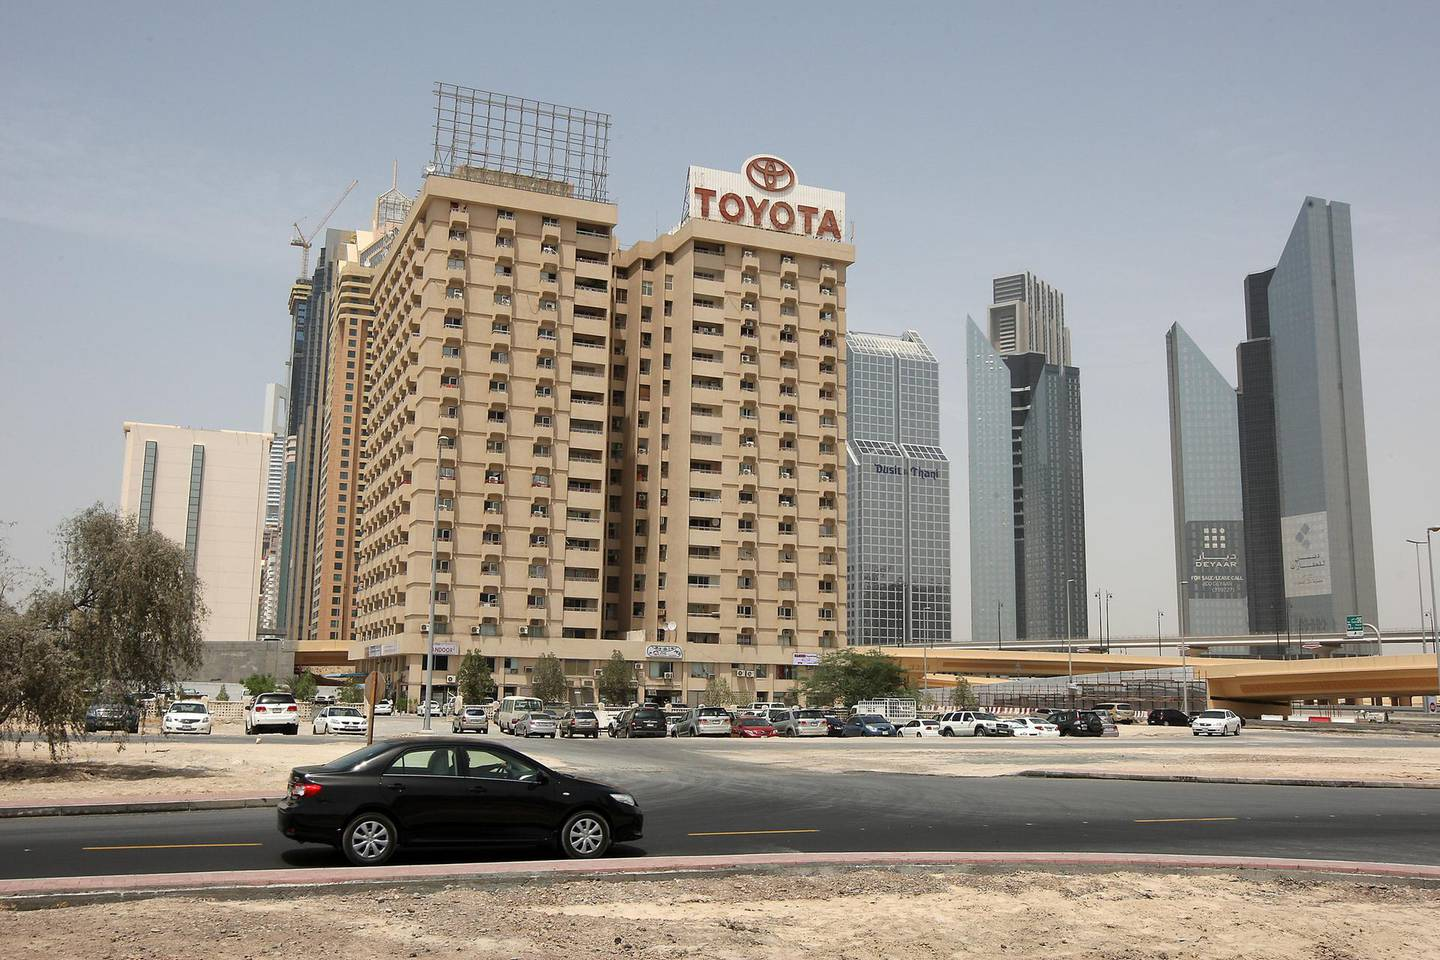 DUBAI , UNITED ARAB EMIRATES Ð MAY 9 : Outside view of the Toyota building near the Defense roundabout on Sheikh Zayed road in Dubai. ( Pawan Singh / The National ) For Summer series modern icons. Story by Martin.